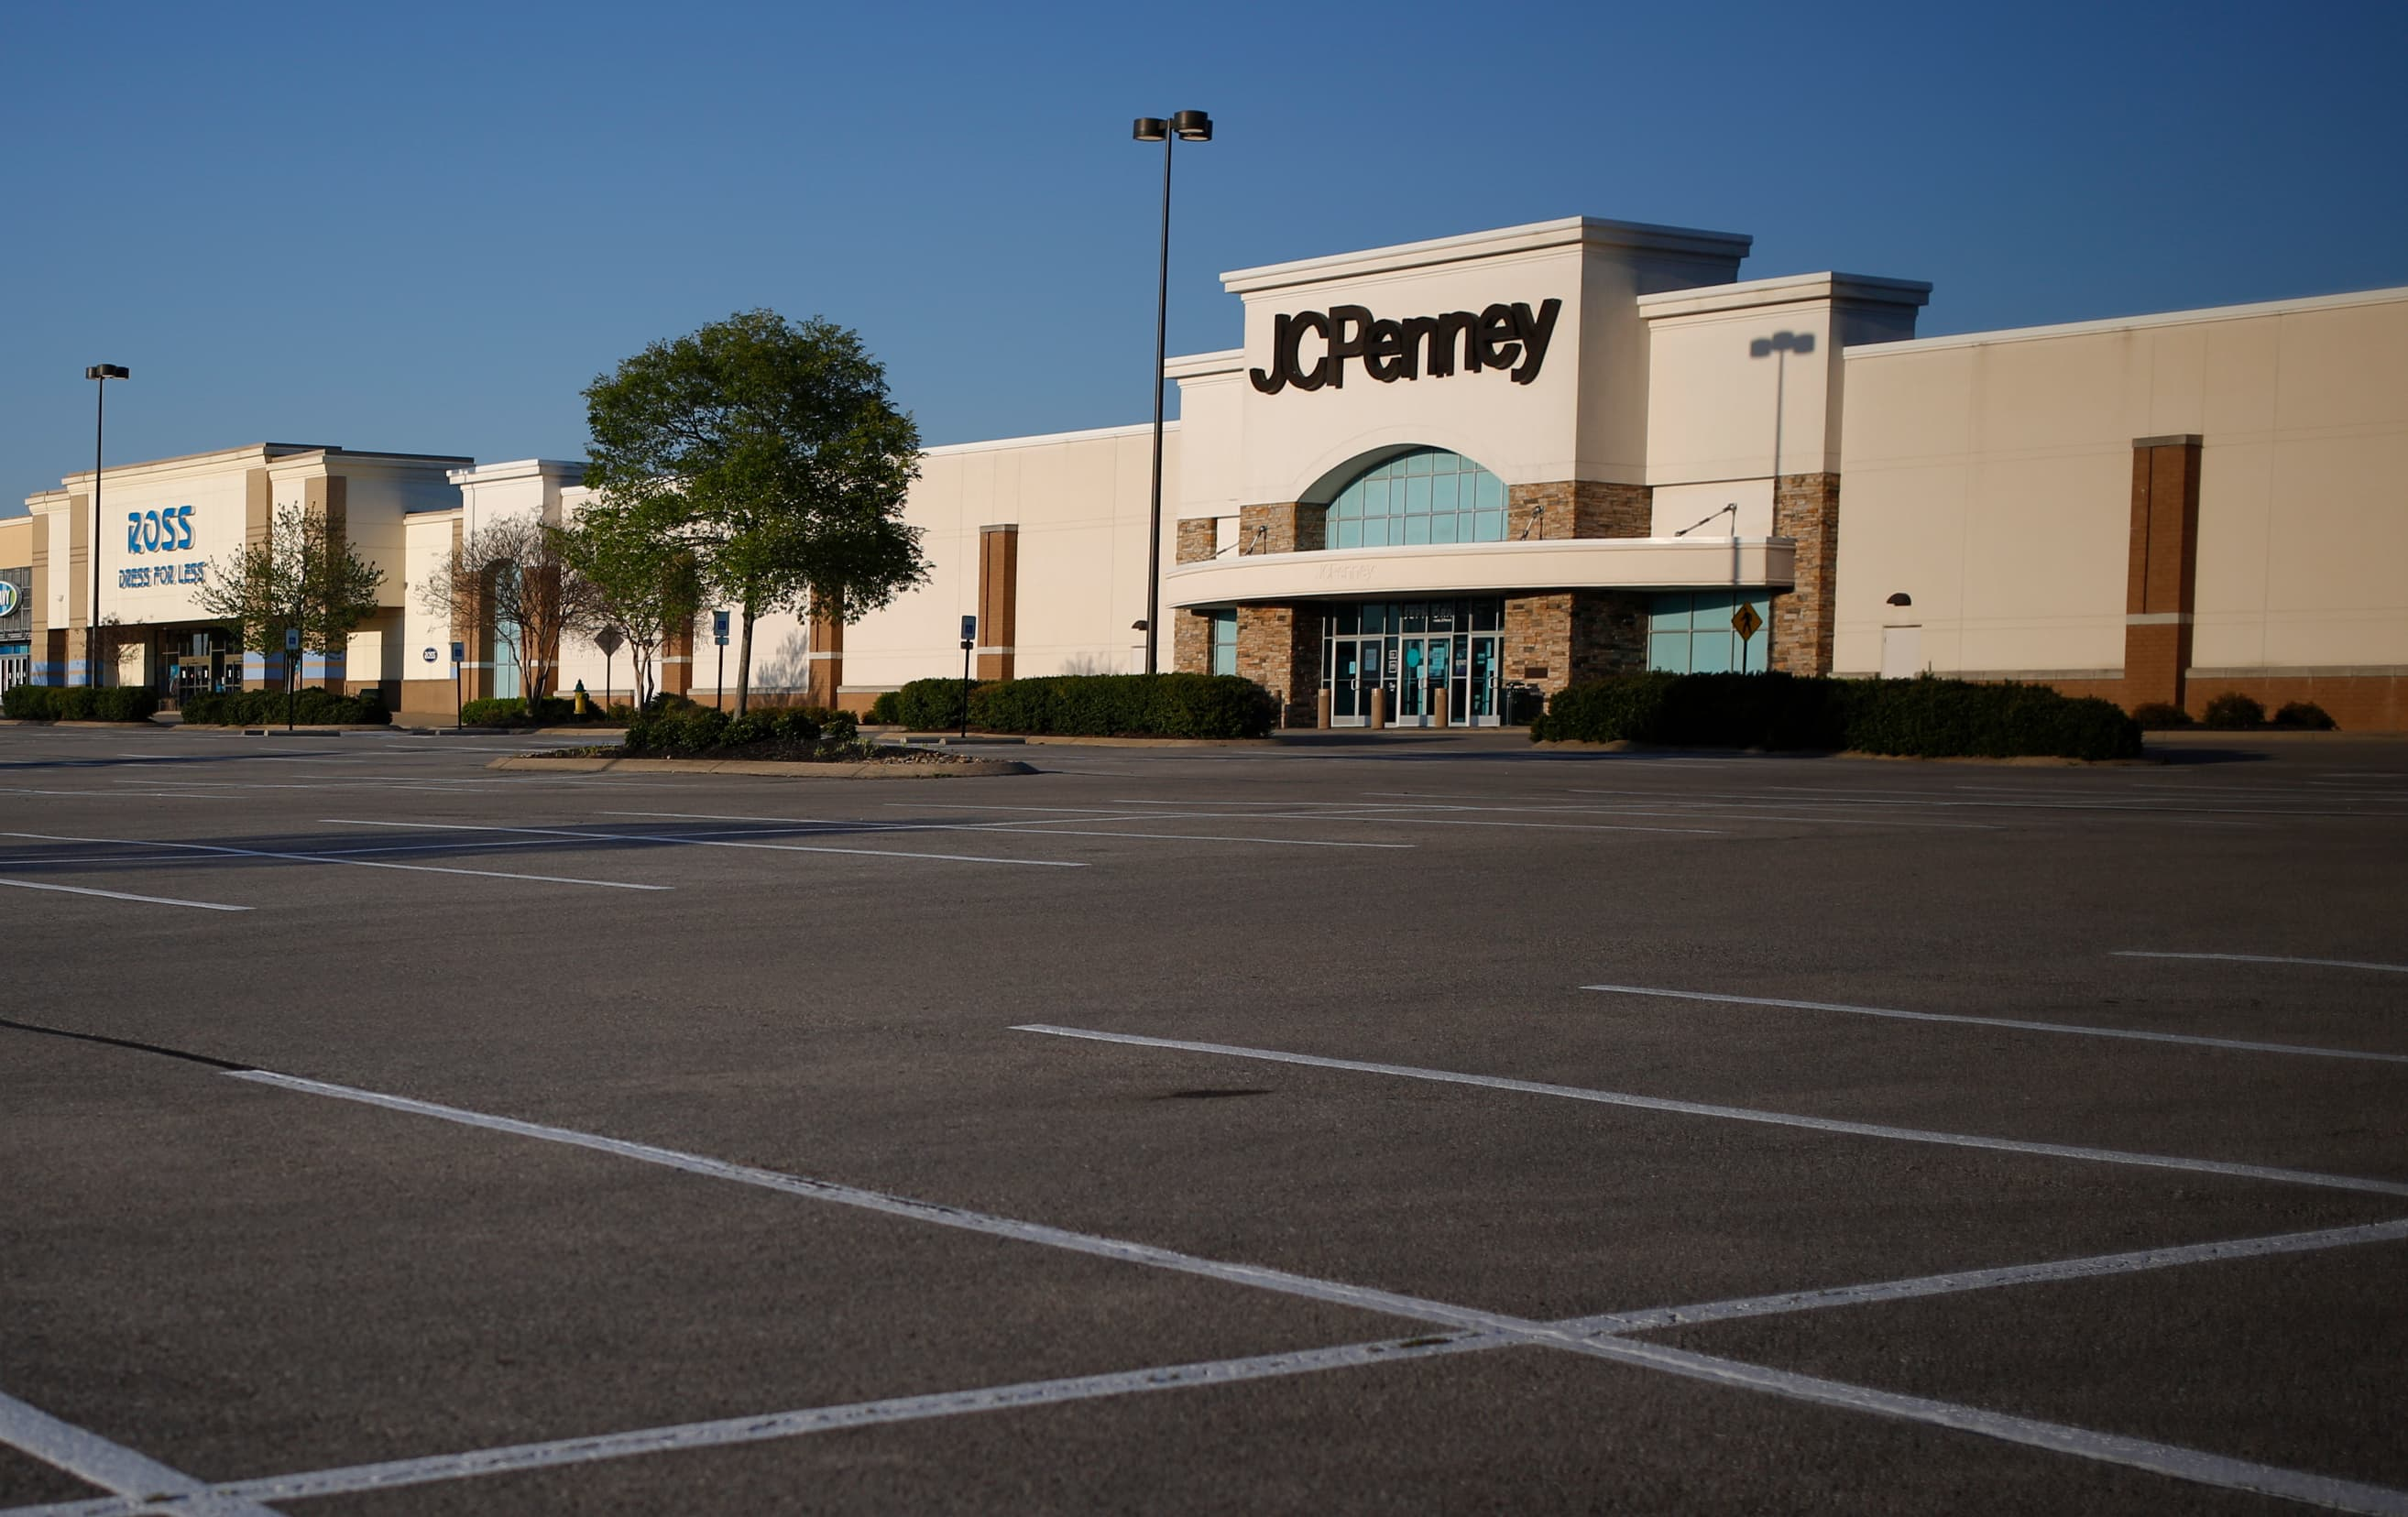 JC Penney hits 'stalemate' with potential buyers. Lenders to make bid for department store in bankruptcy